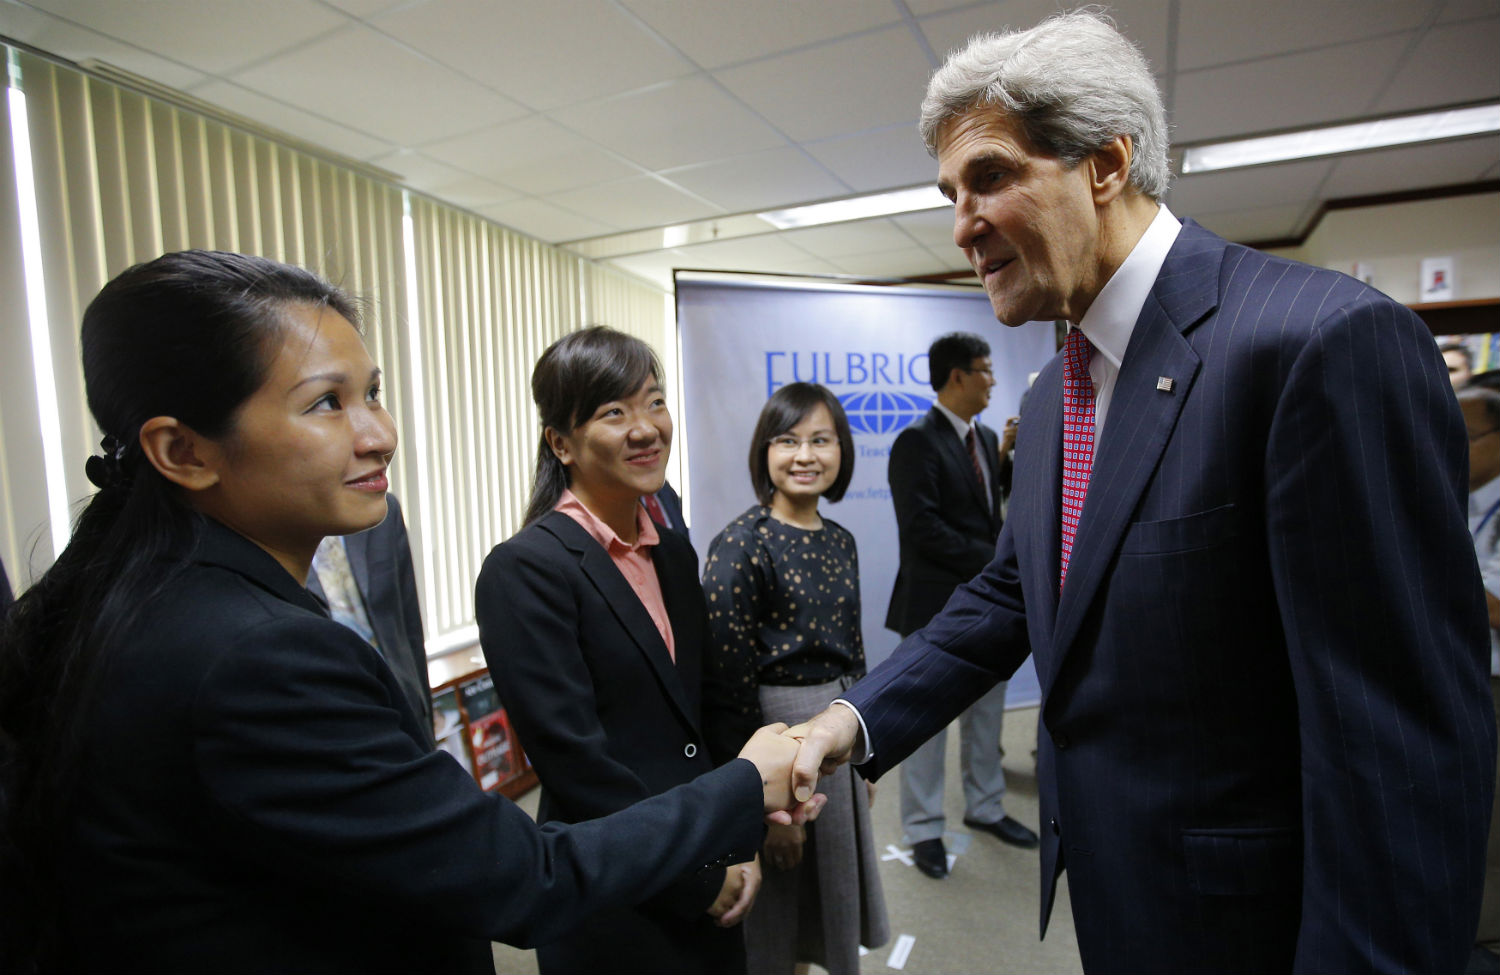 Kerry-Fulbright